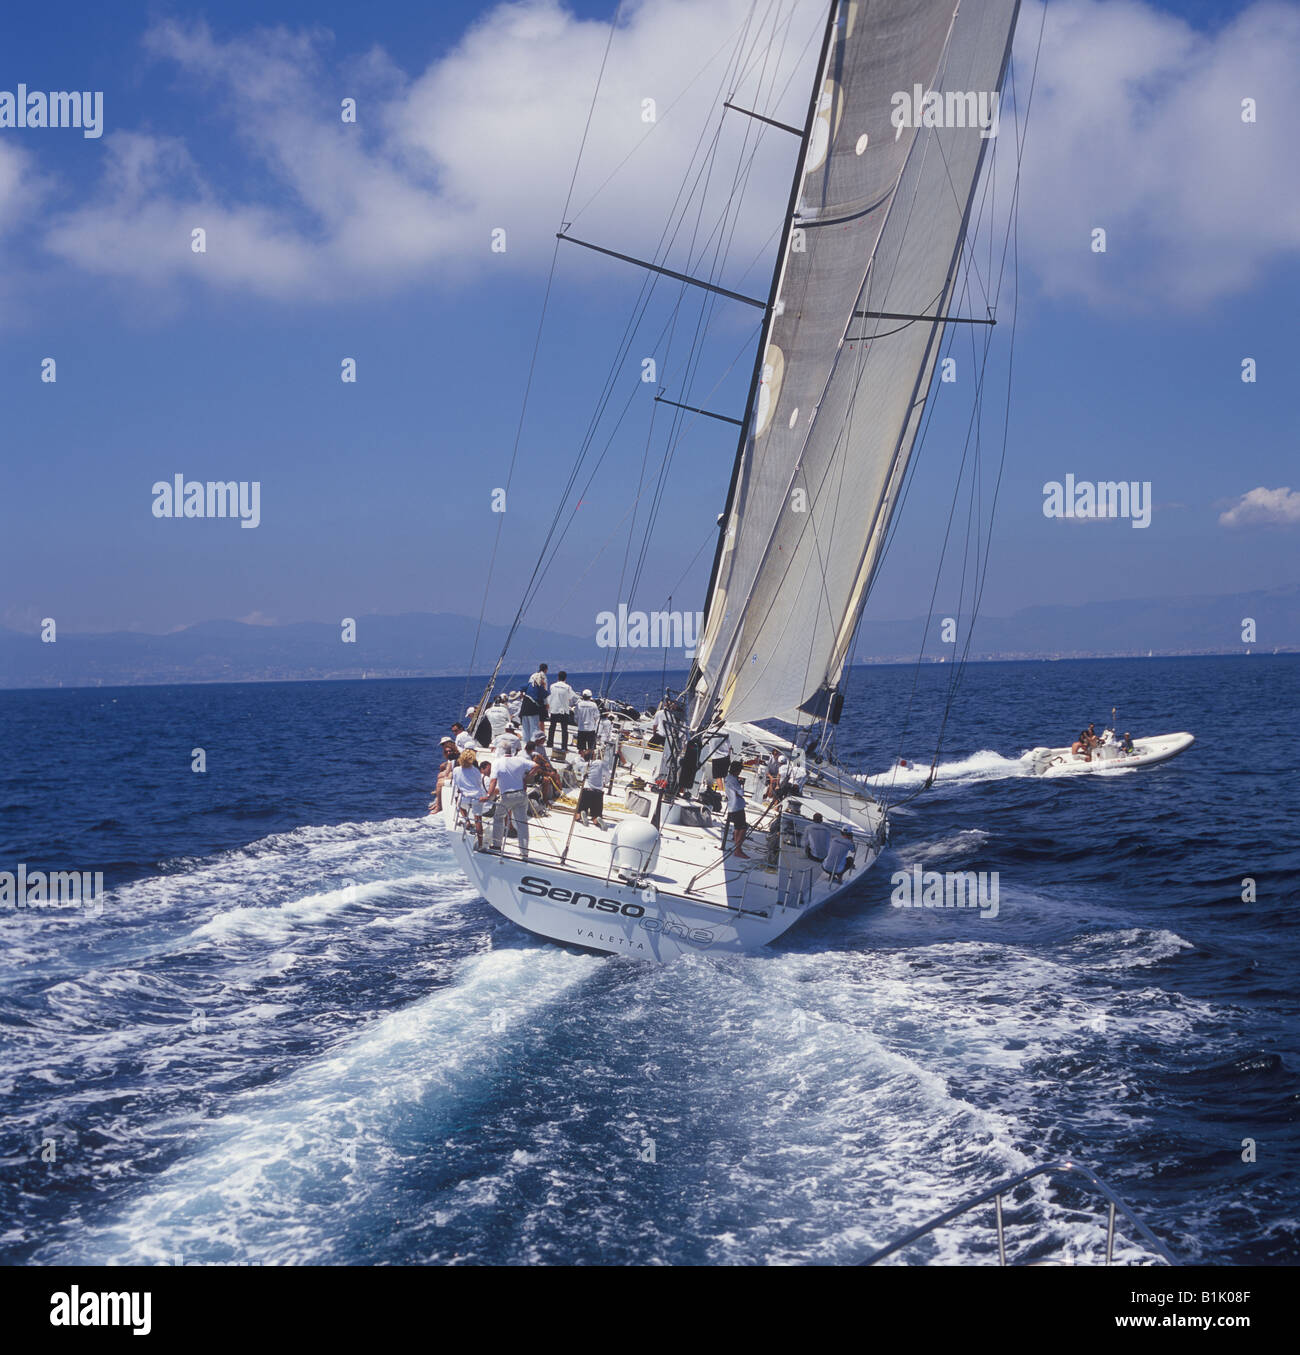 Superyacht Cup Palma 2008 Ulysse Nardin Cup regatta in the Bay of Palma de Mallorca - sailing superyacht Senso One - Stock Image